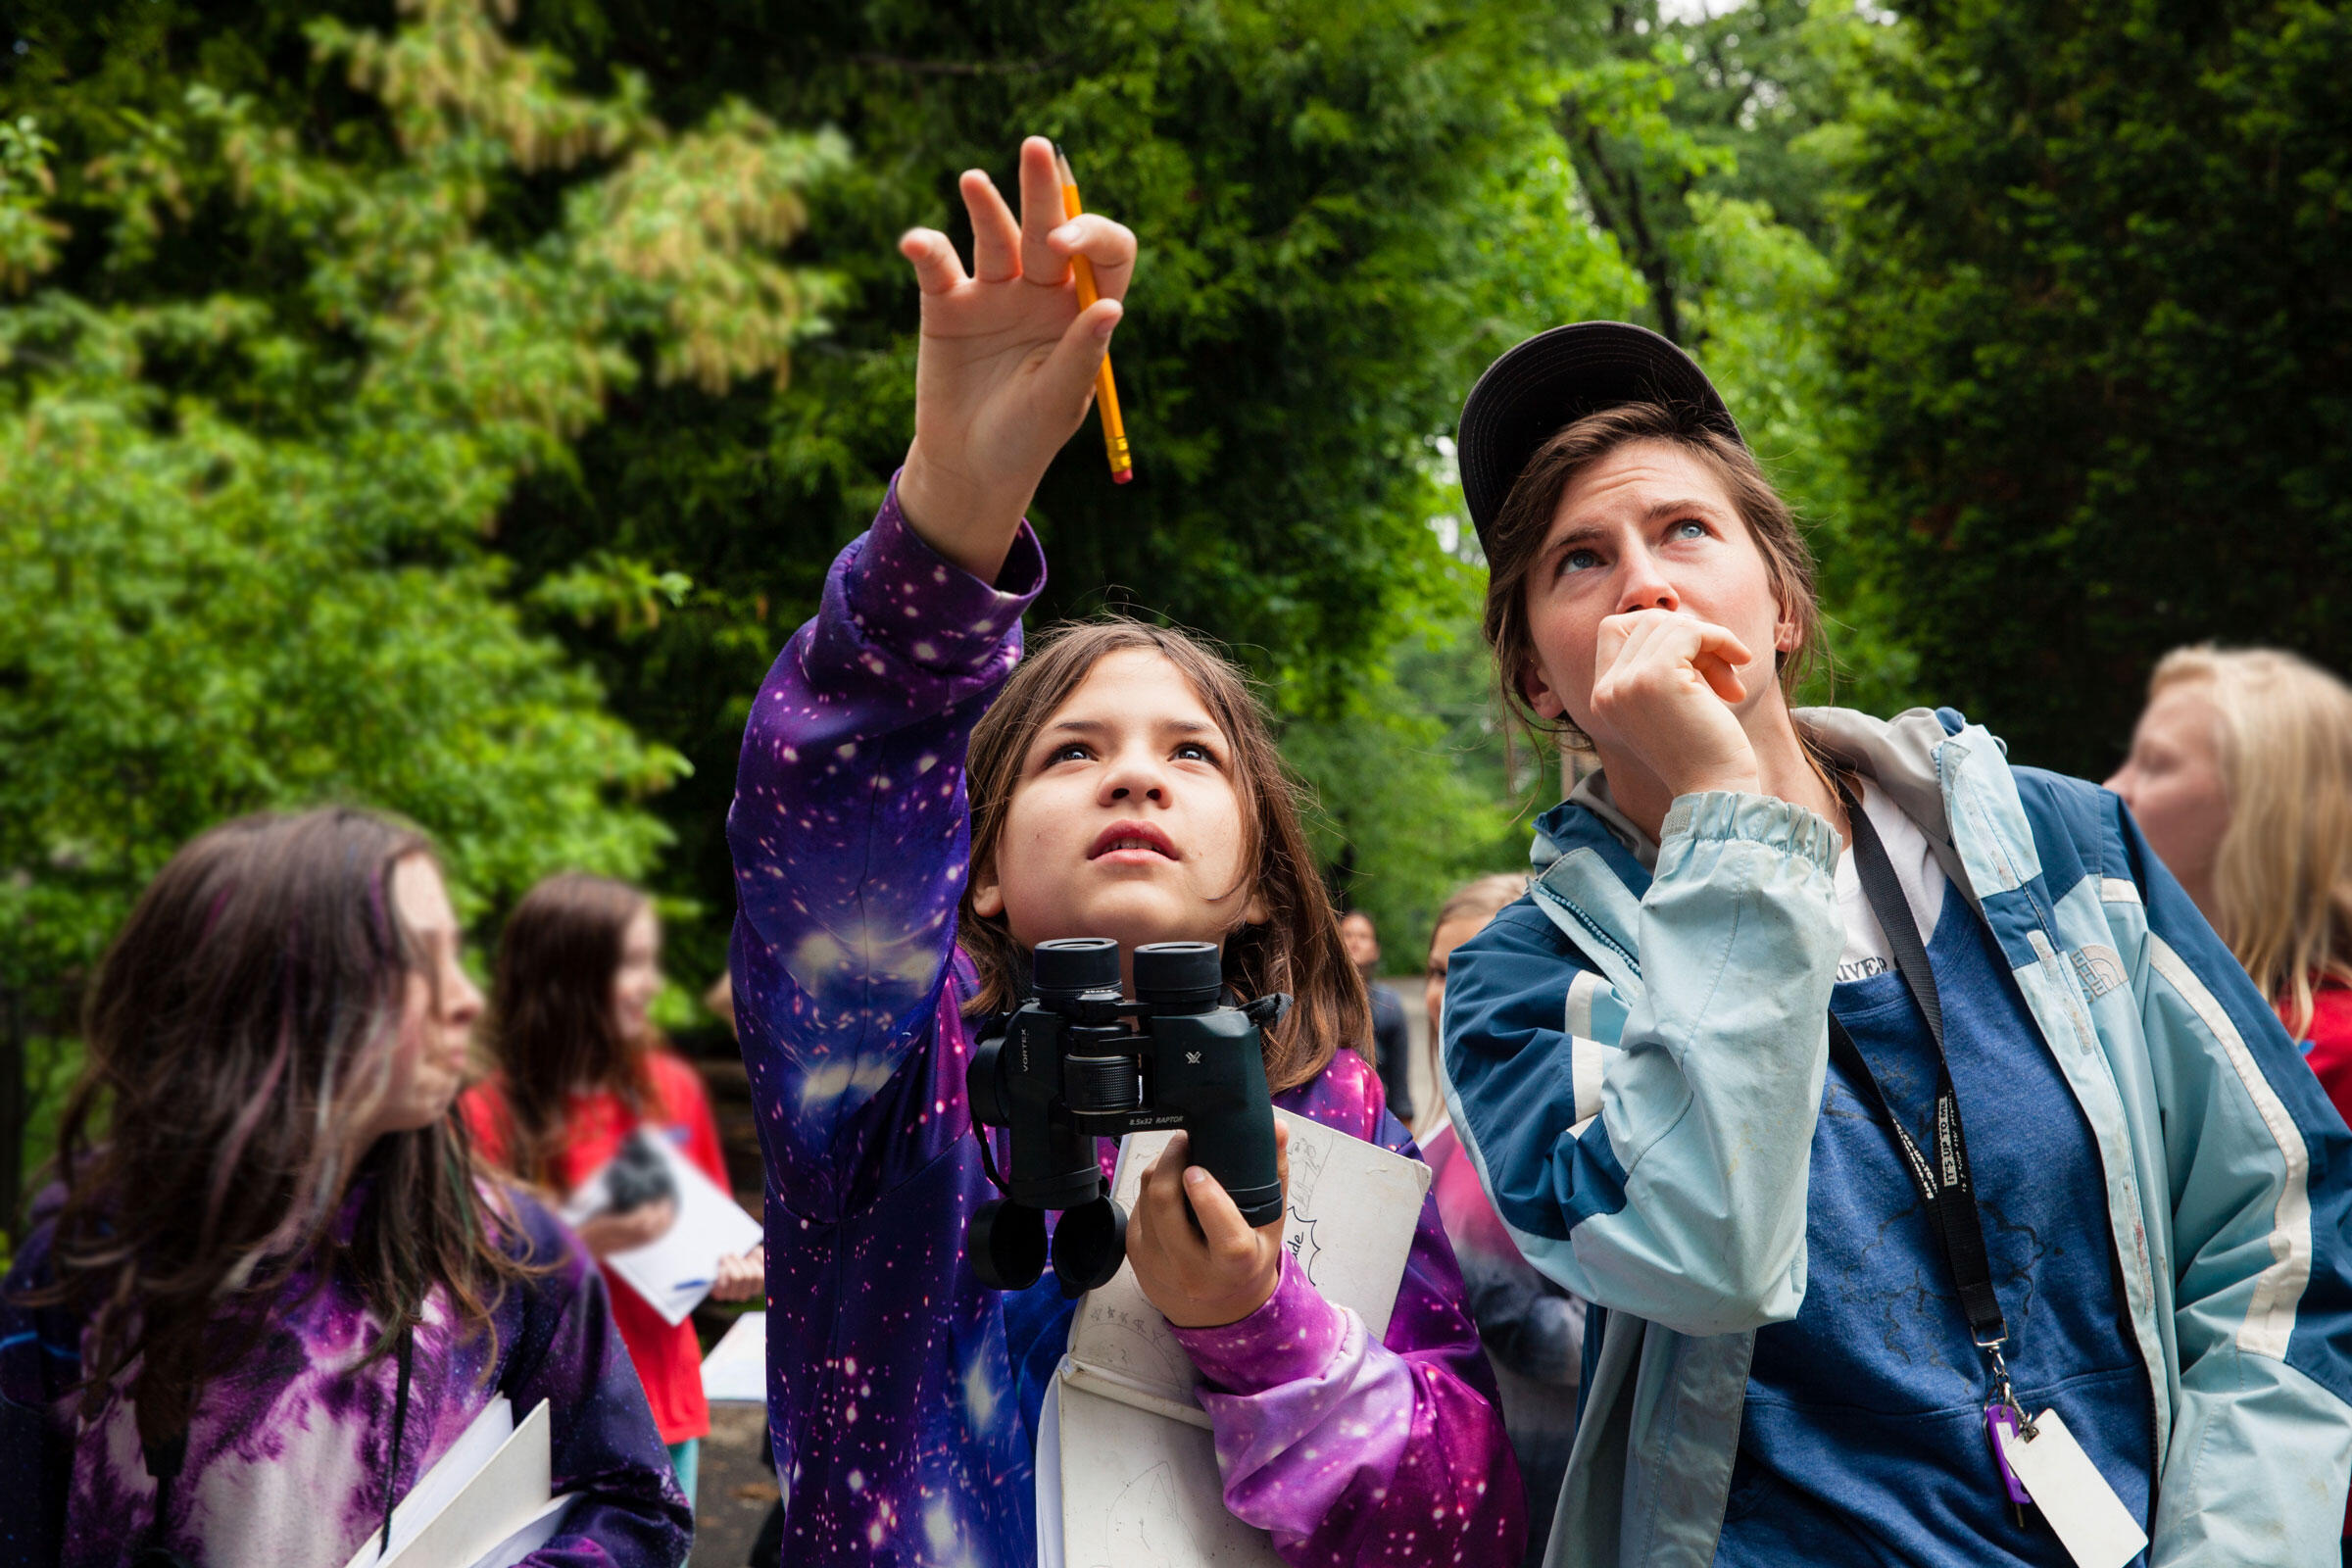 Johanna Stoermer, 12, and Emily Bryant, environmental education assistant for Plumas Audubon Society, spot a bird in a tree during a bird walk at Quincy Elementary School. Maggie Starbard